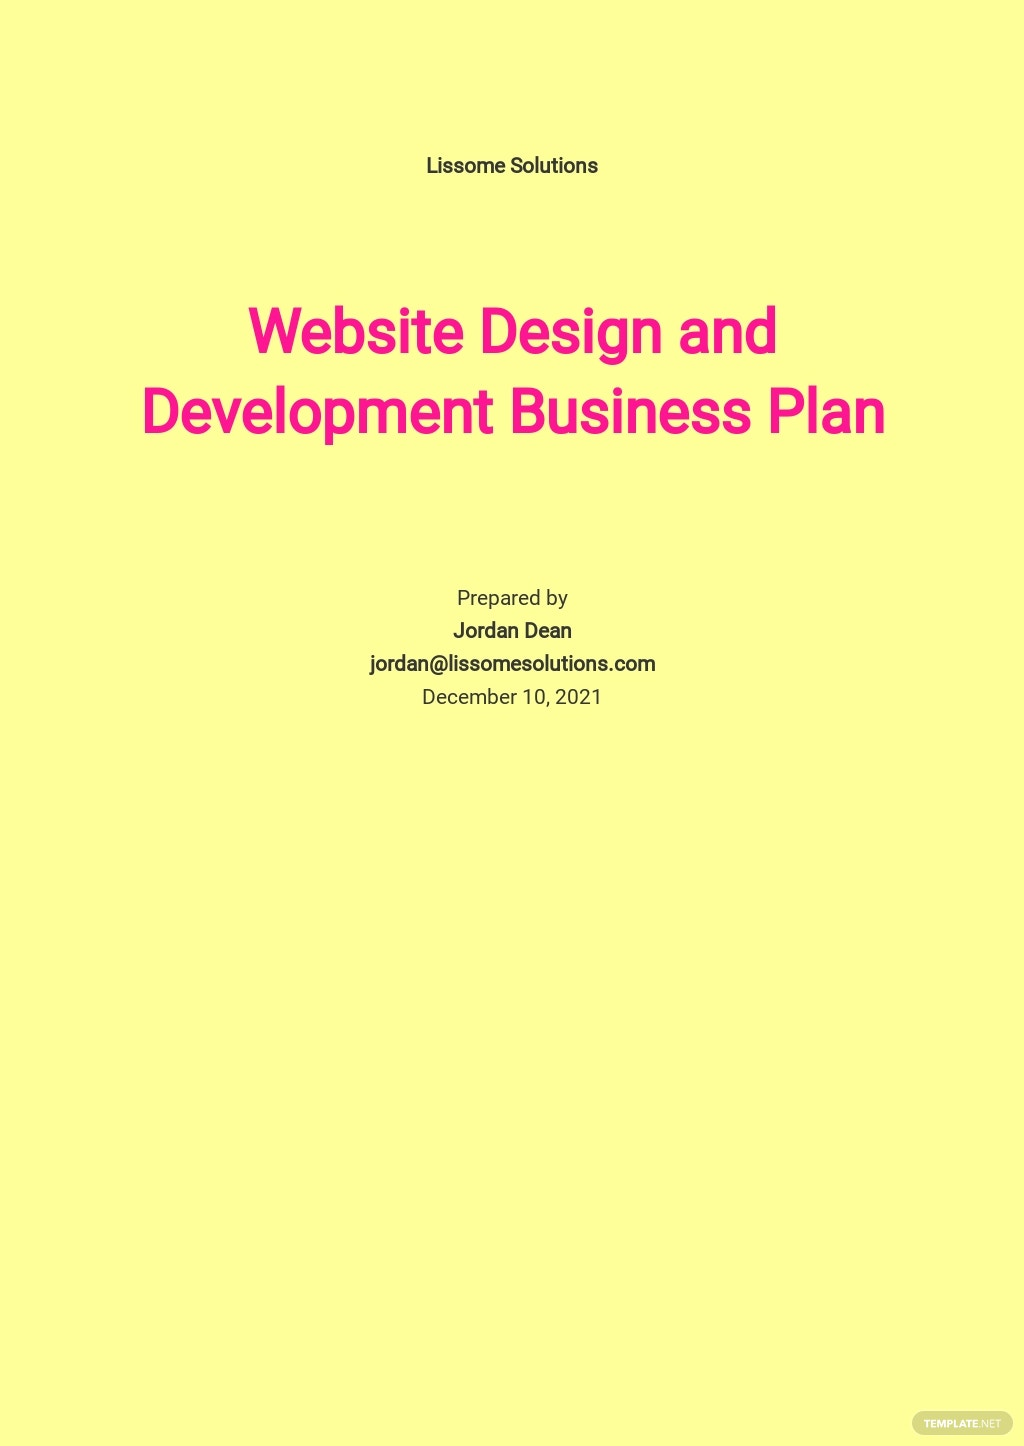 Website Design and Development Business Plan Template